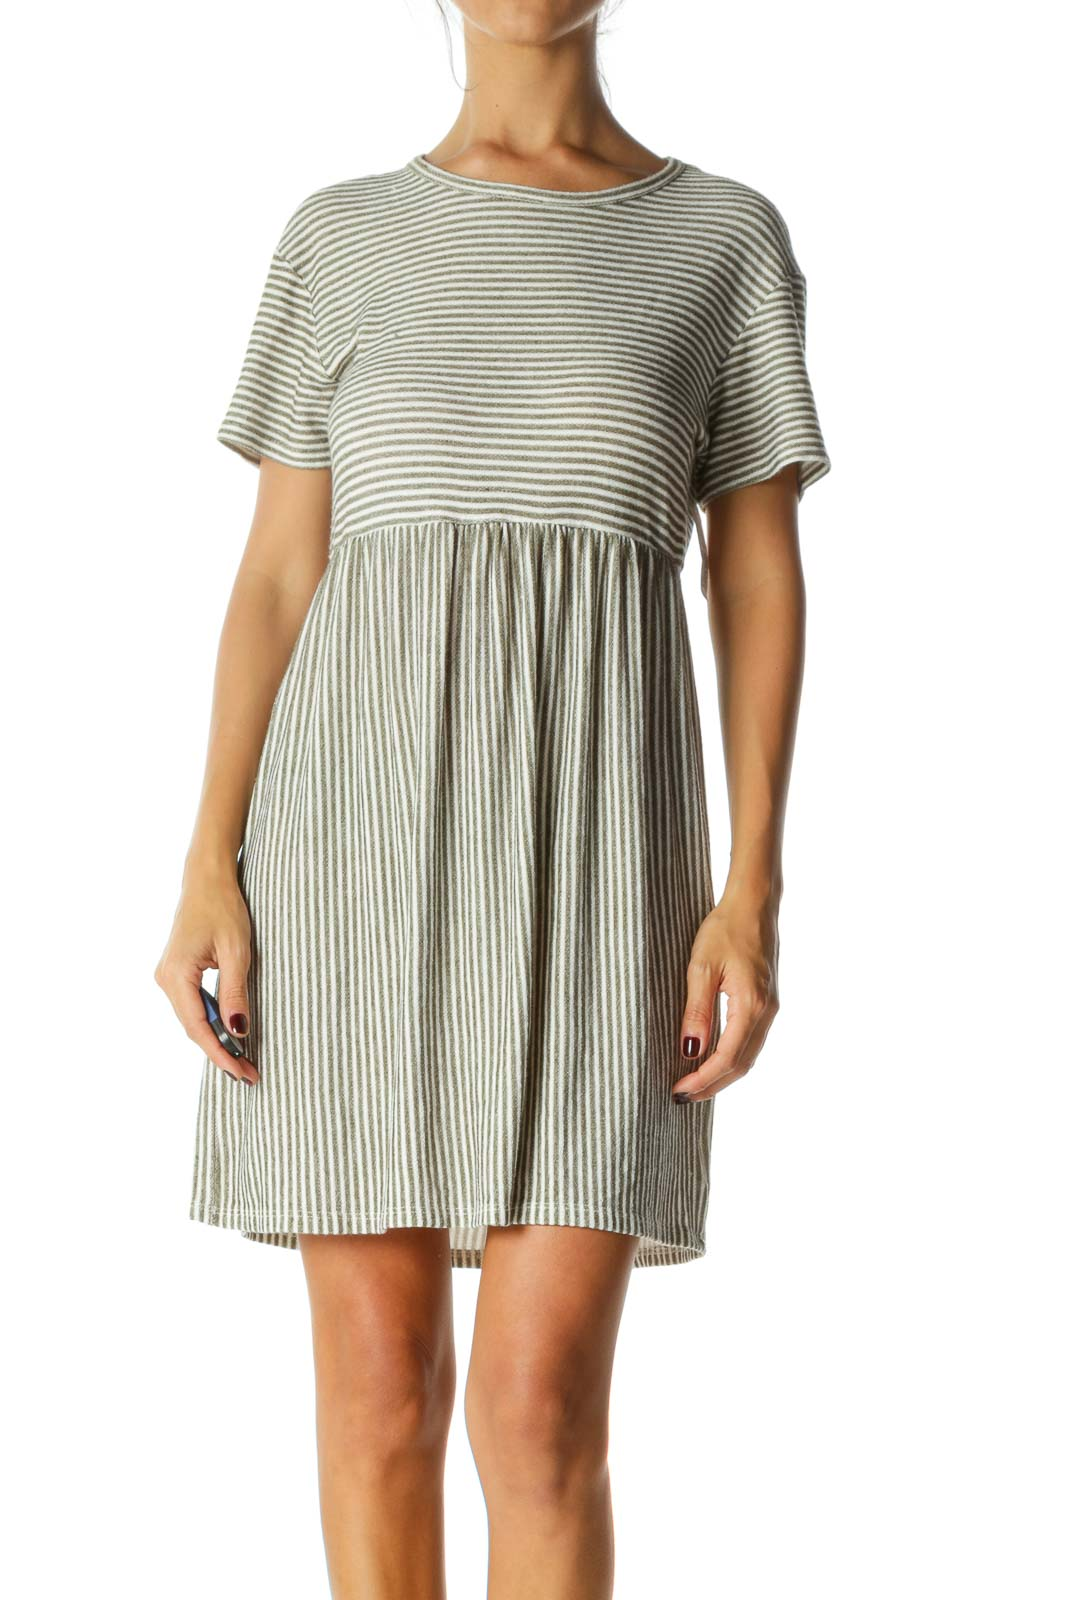 Green White Striped Round Neck Short Sleeve Knit Dress Front